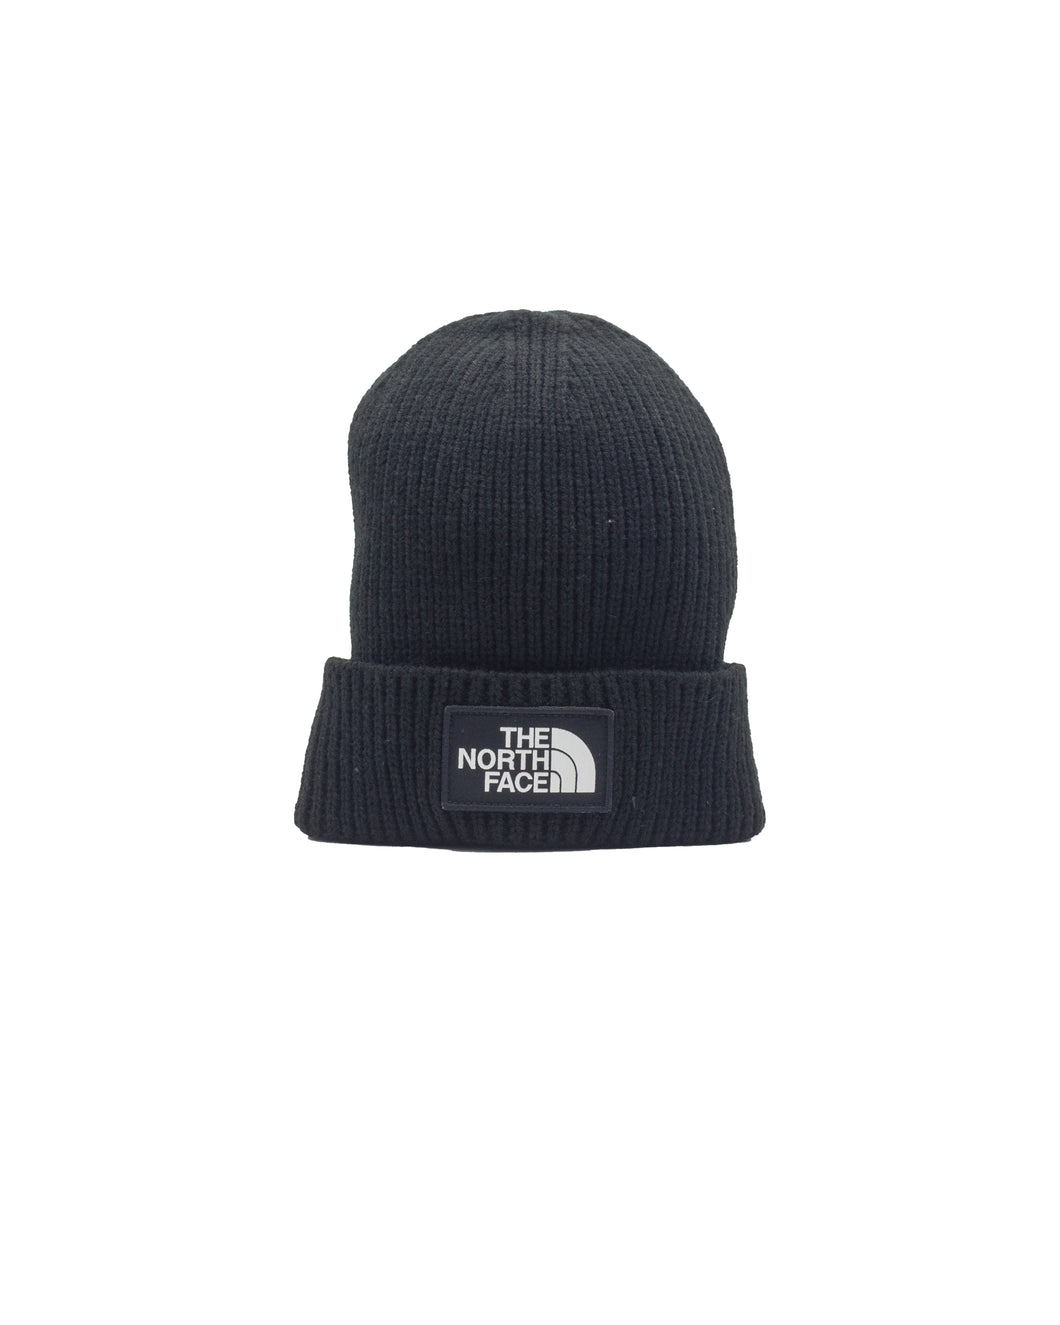 The North Face CappelloLogo Boc Cuffed Beanie BLACK